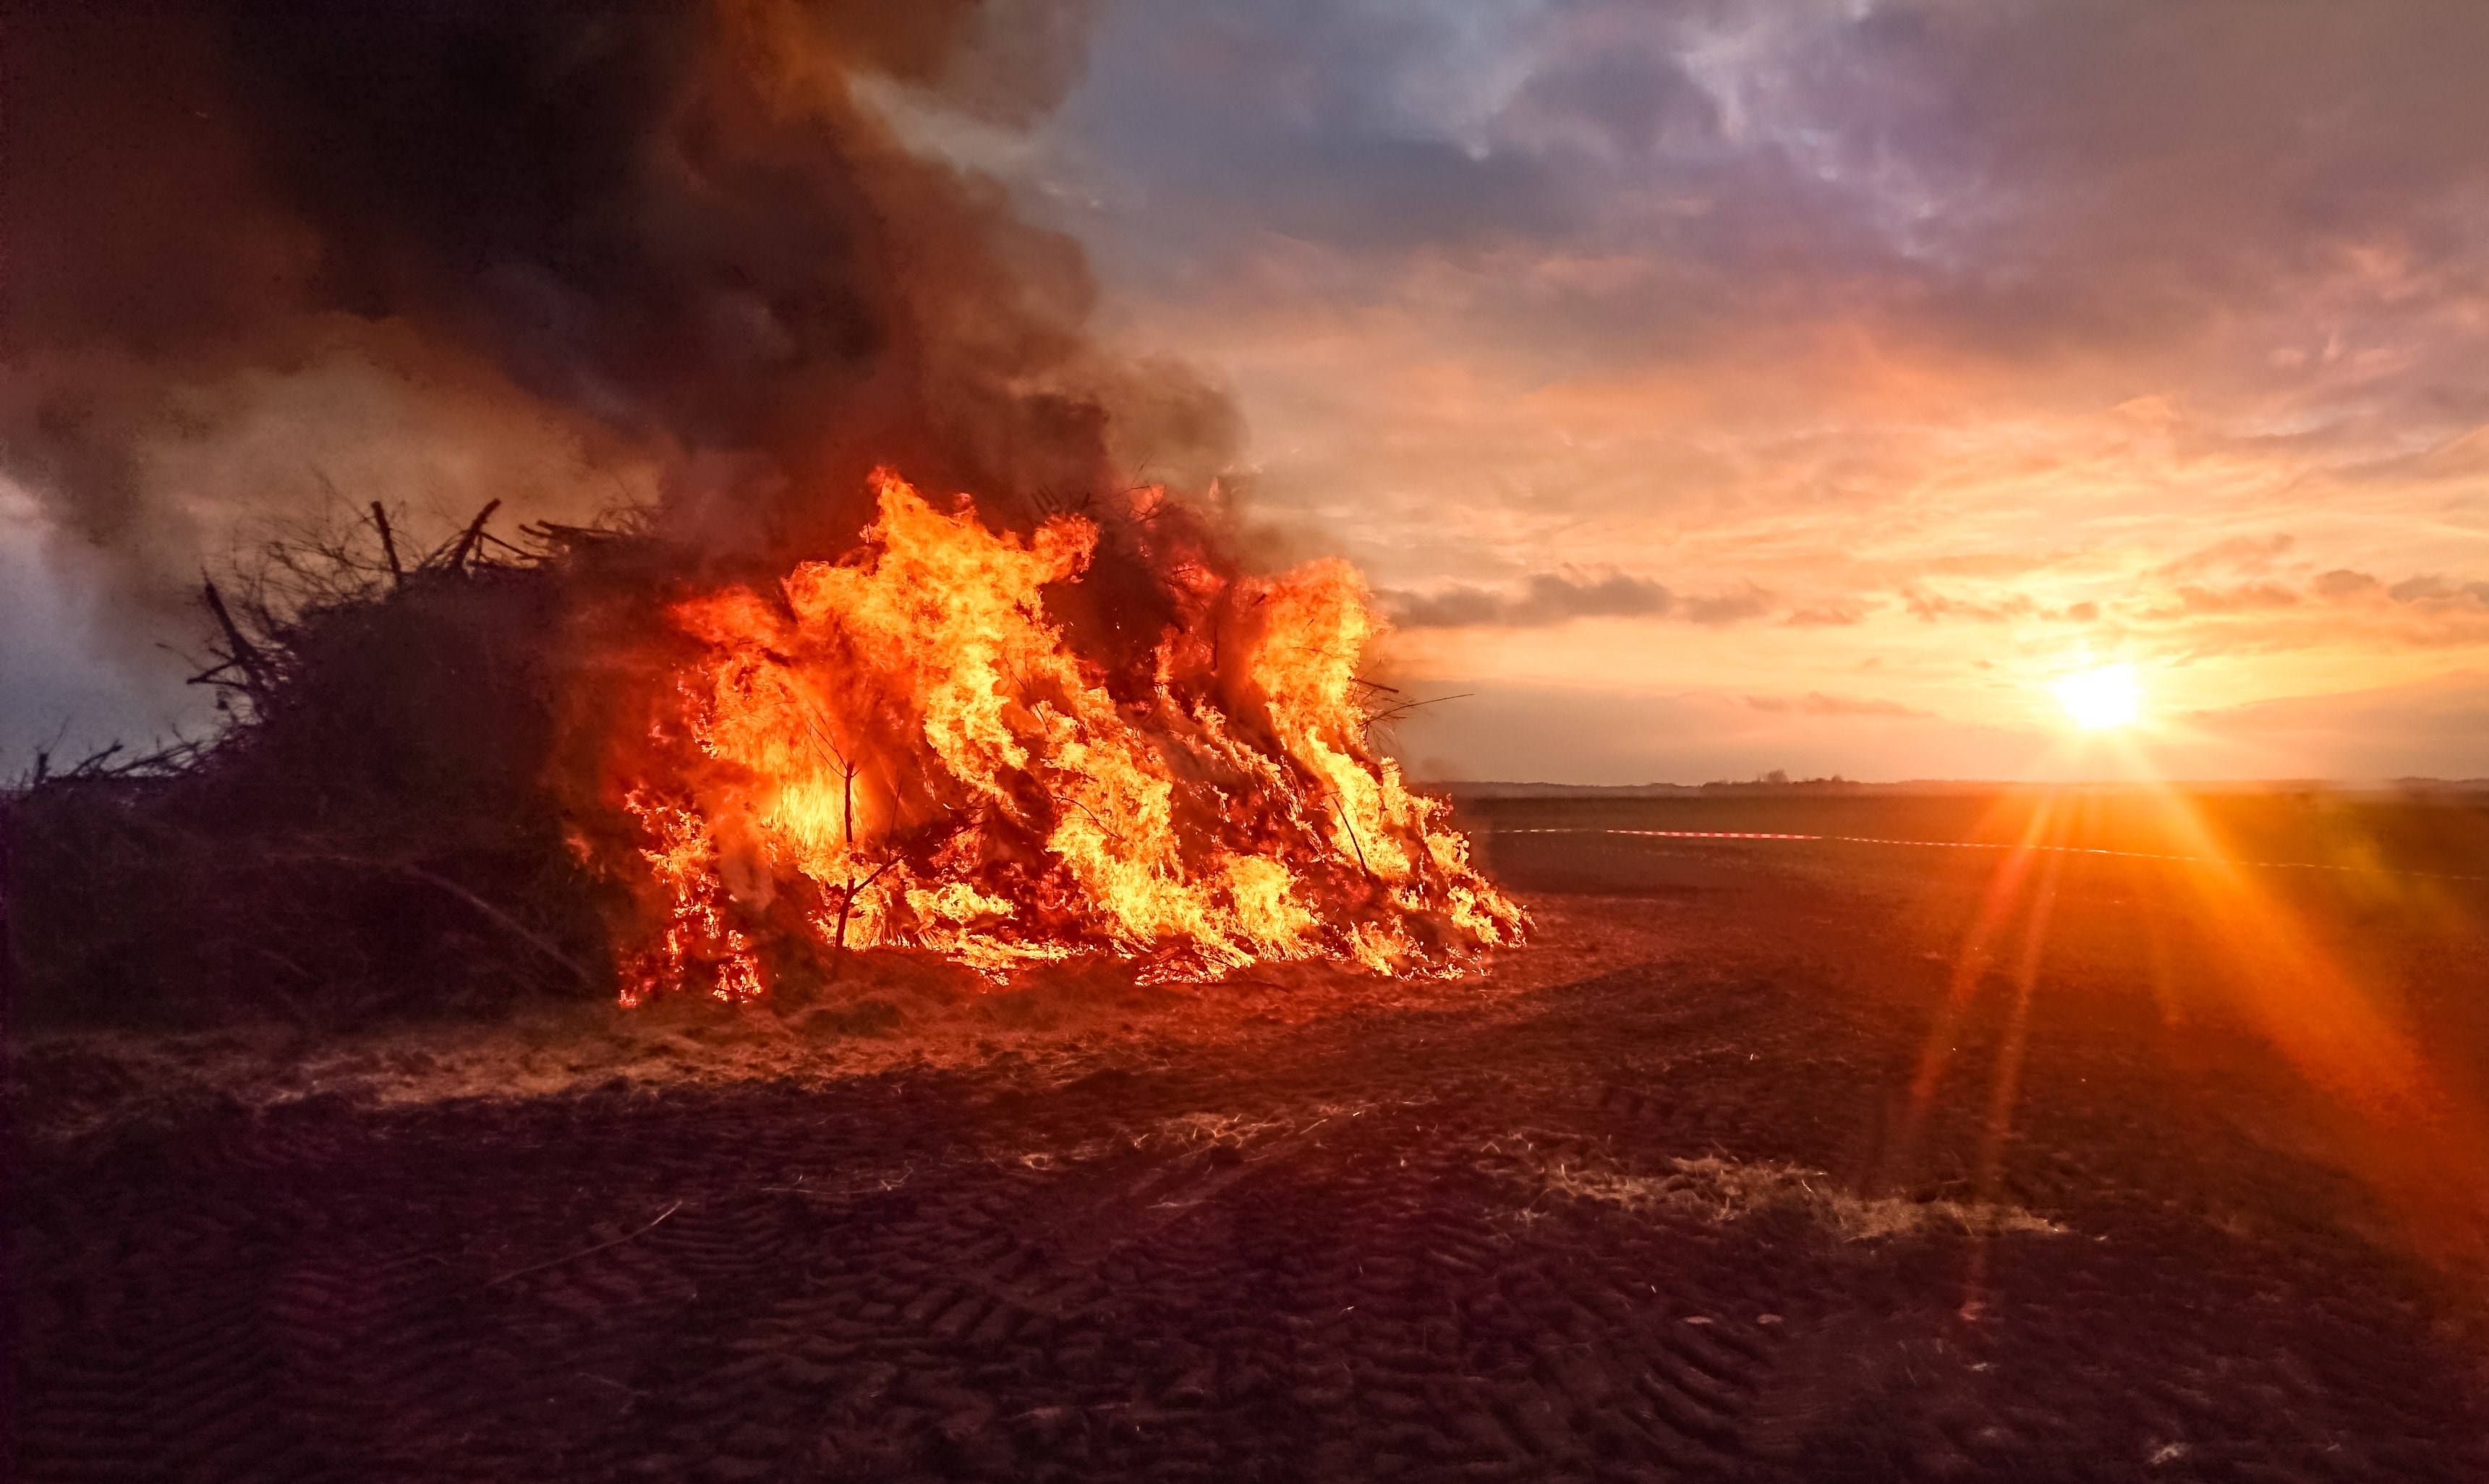 bonfire-during-sunset-1019472.jpg